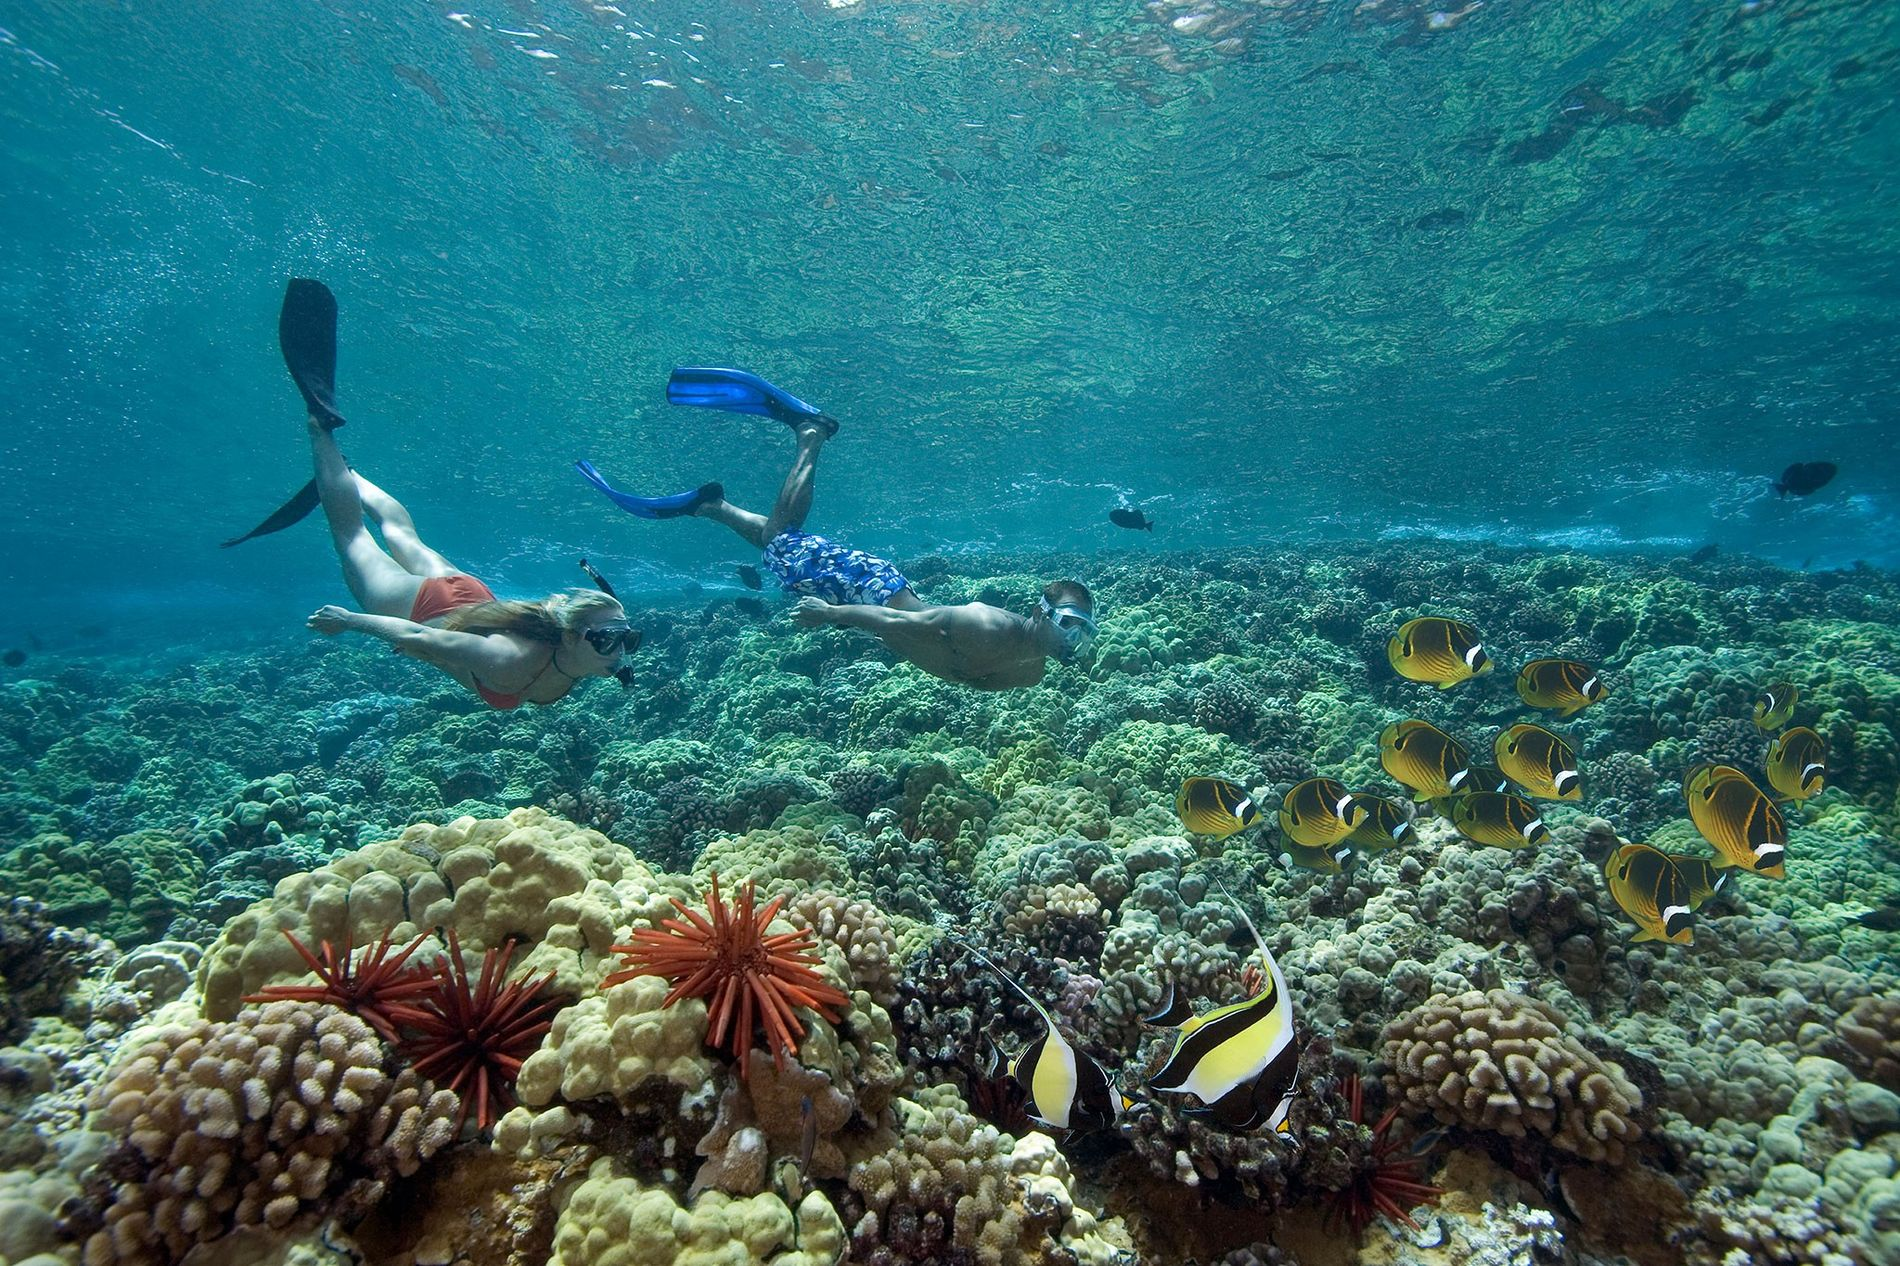 In Hawaii two free divers explore a coral reef and some of its resident butterflyfish.